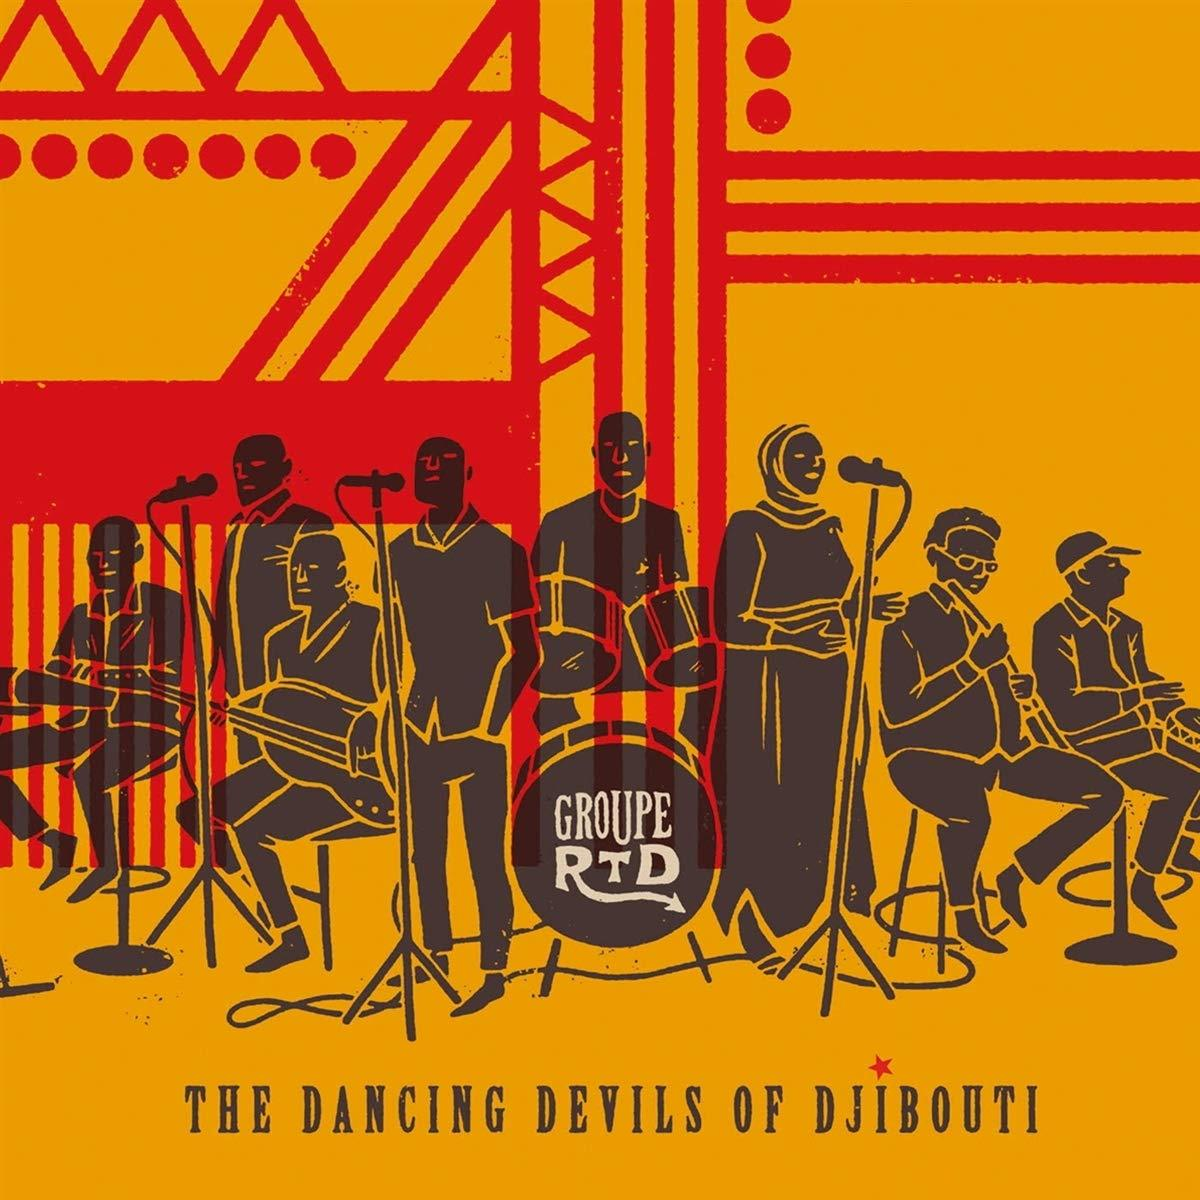 Groupe RTD - The Dancing Devils Of Djibouti [CD] - Urban Vinyl | Records, Headphones, and more.